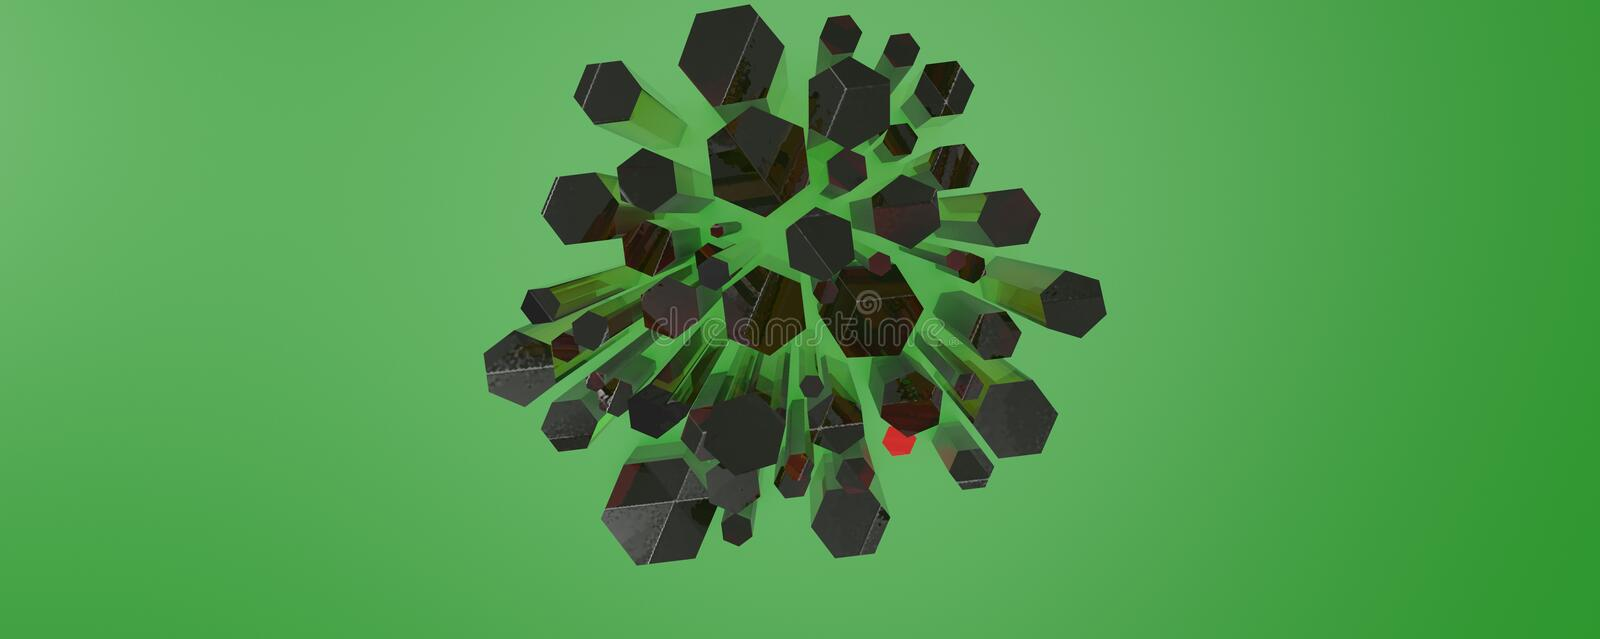 Abstract 3d model royalty-vrije stock afbeelding